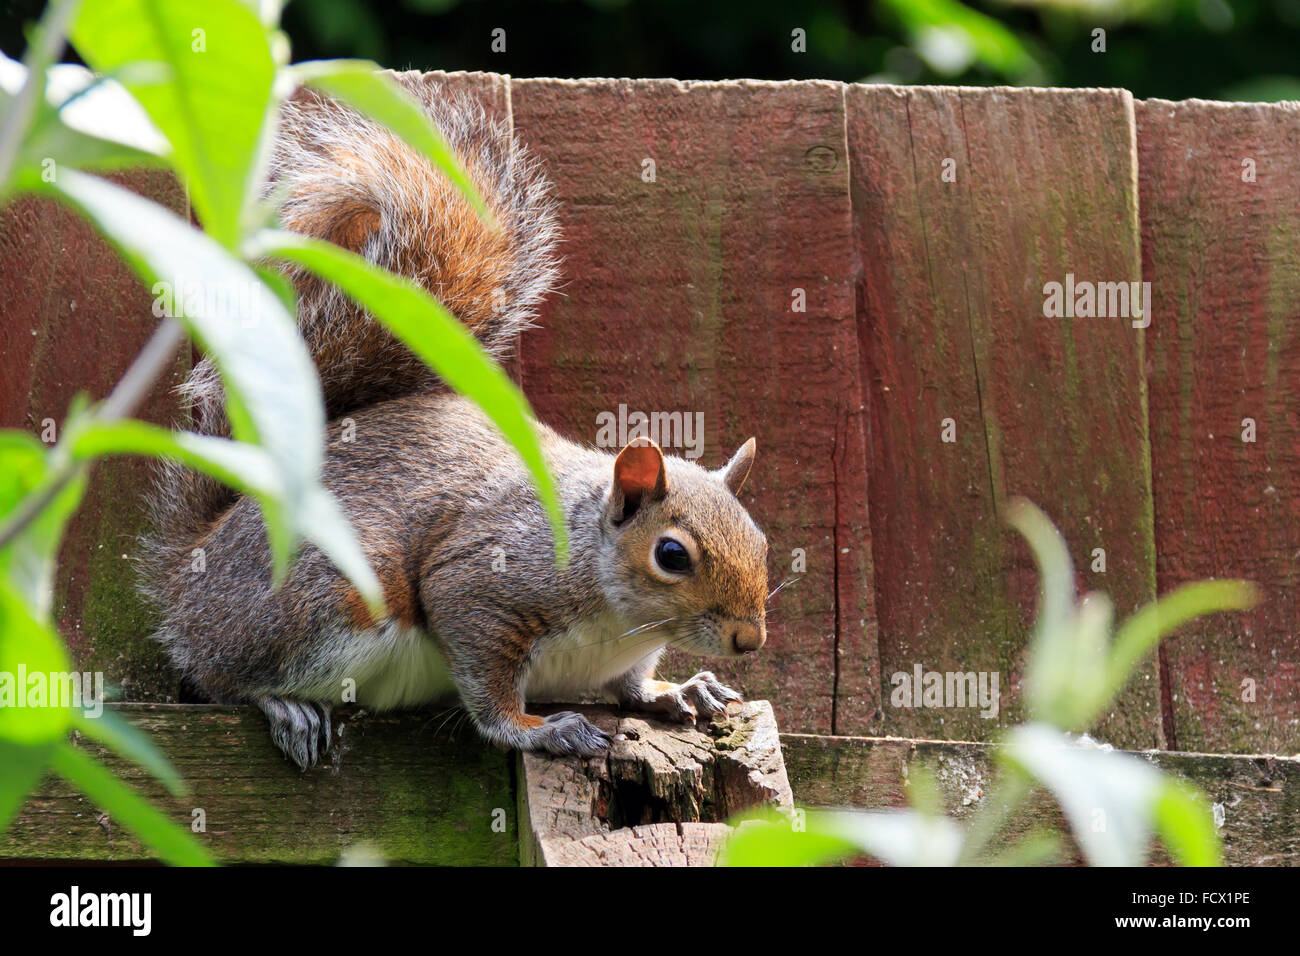 Grey Squirrel sat and partially hidden by leaves in the UK - Stock Image